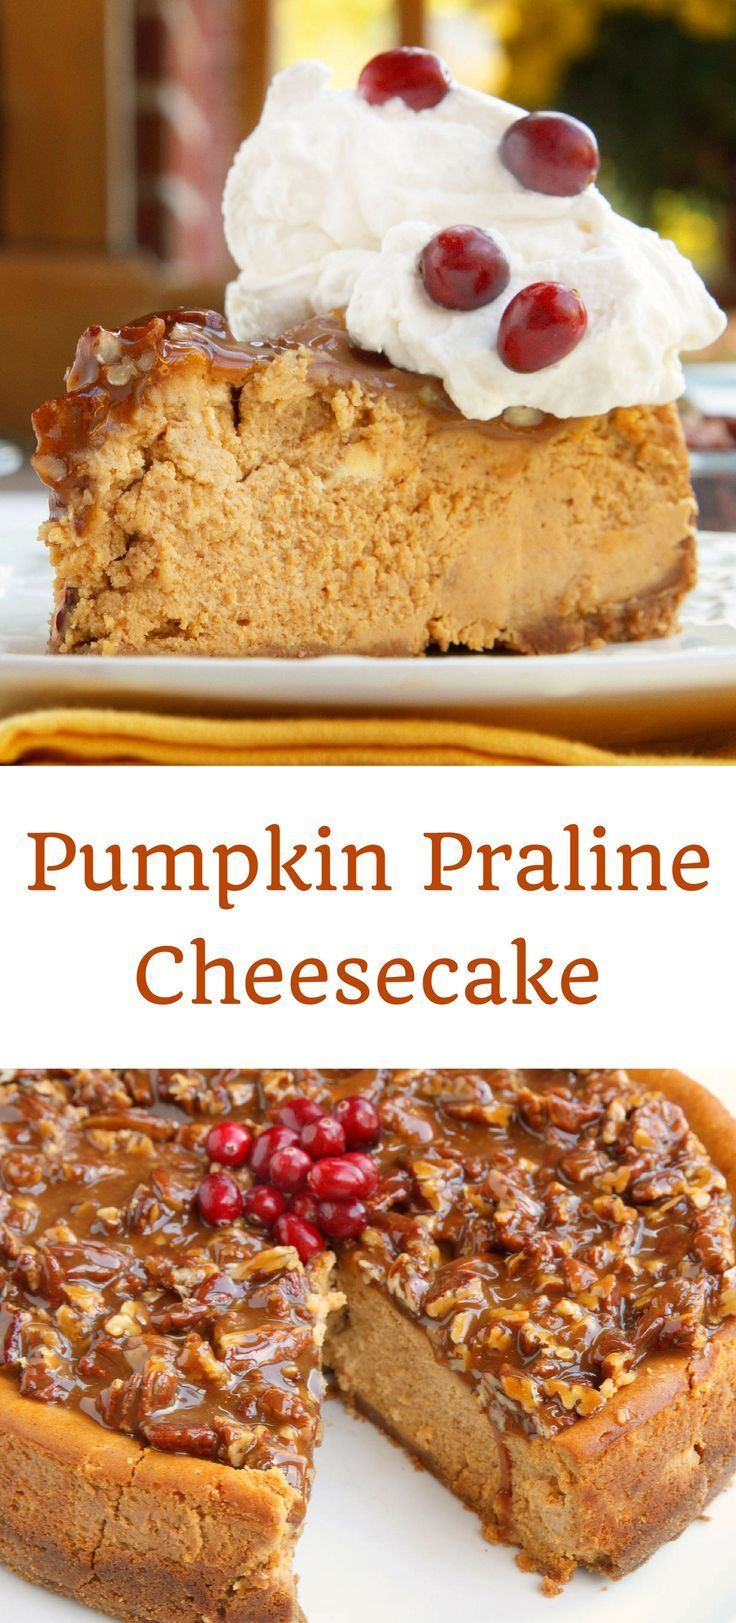 Pumpkin Praline Cheesecake Recipe for your Fall and Holiday Table ...